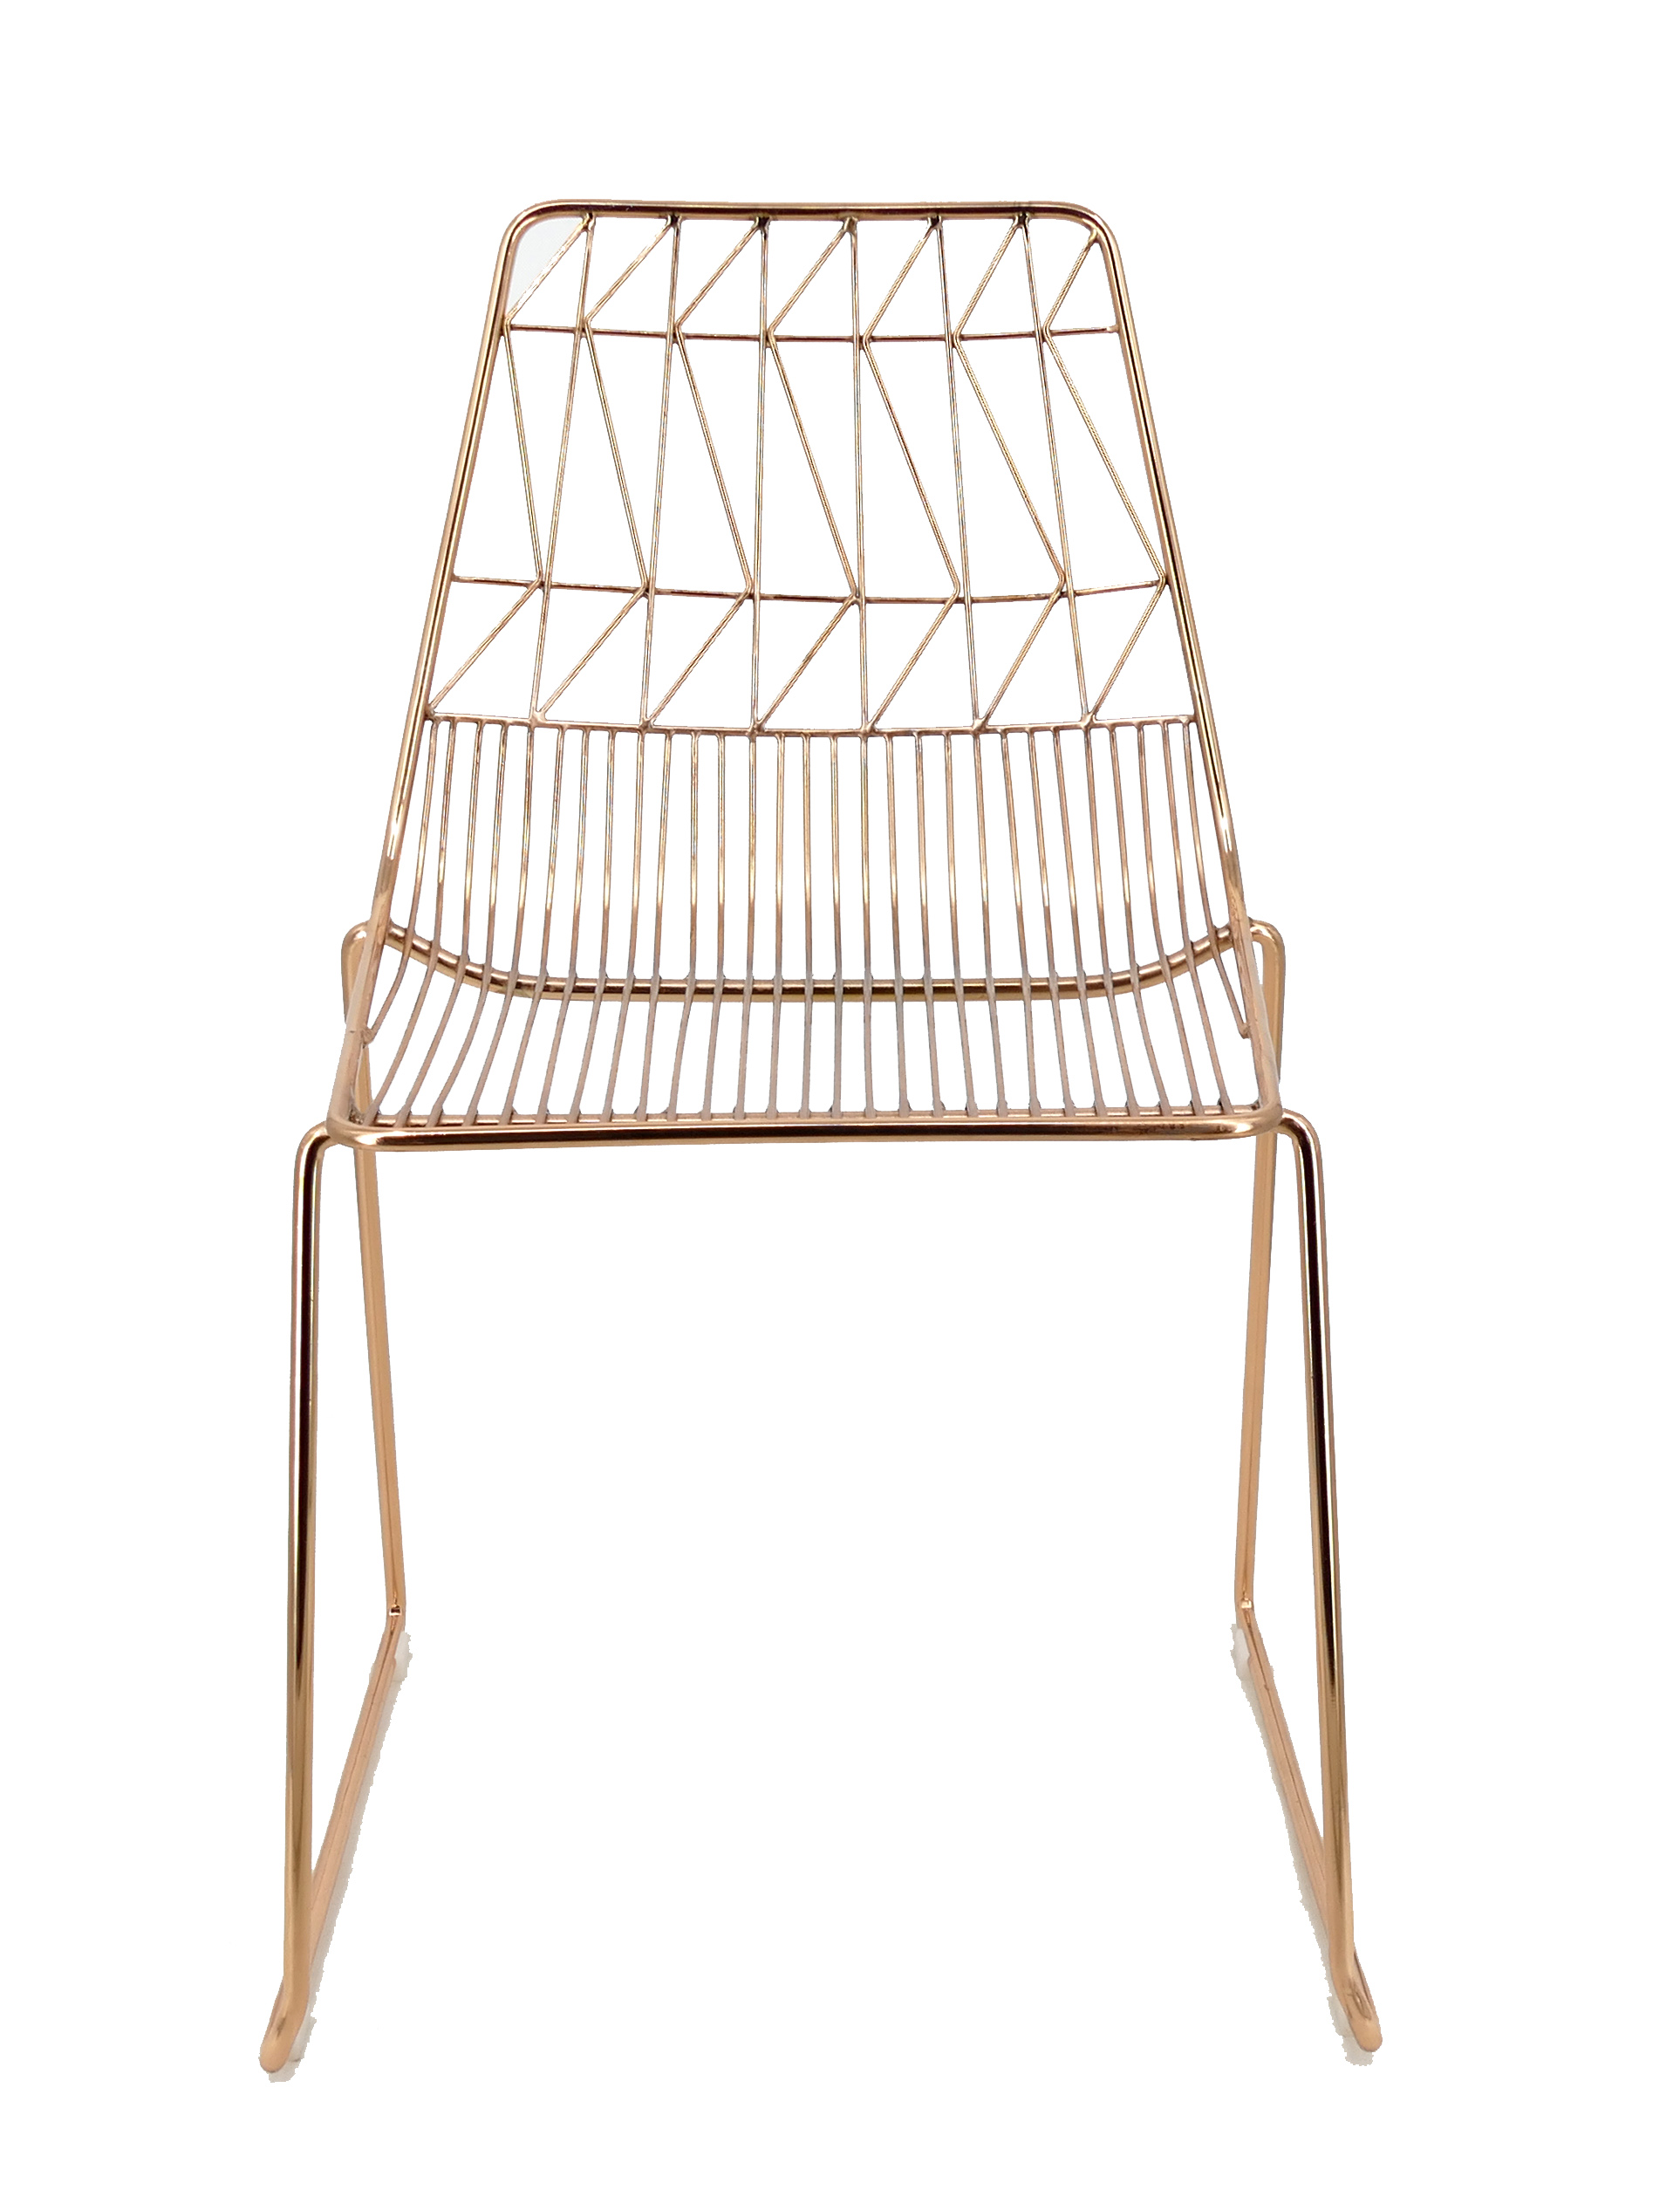 overstock shipping free wire garden inch product home dominic today x chair